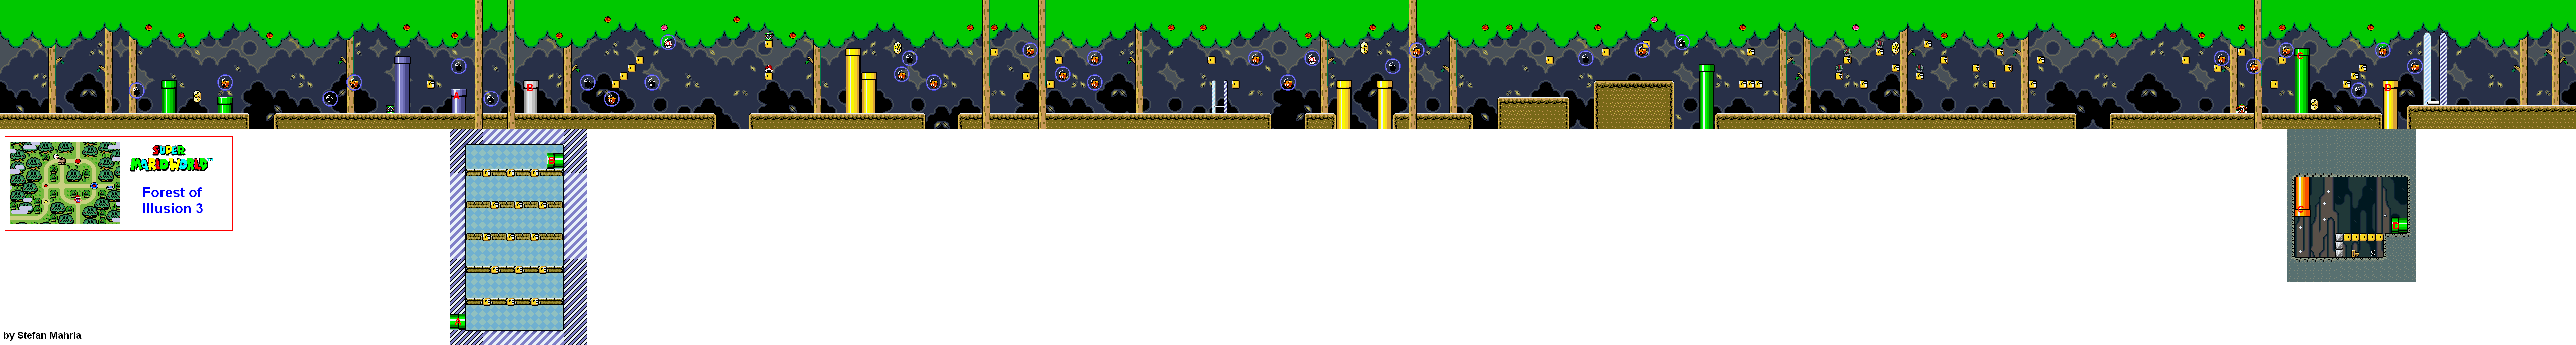 Super mario world levels game maps forest of illusion forest of illusion 3 gumiabroncs Images